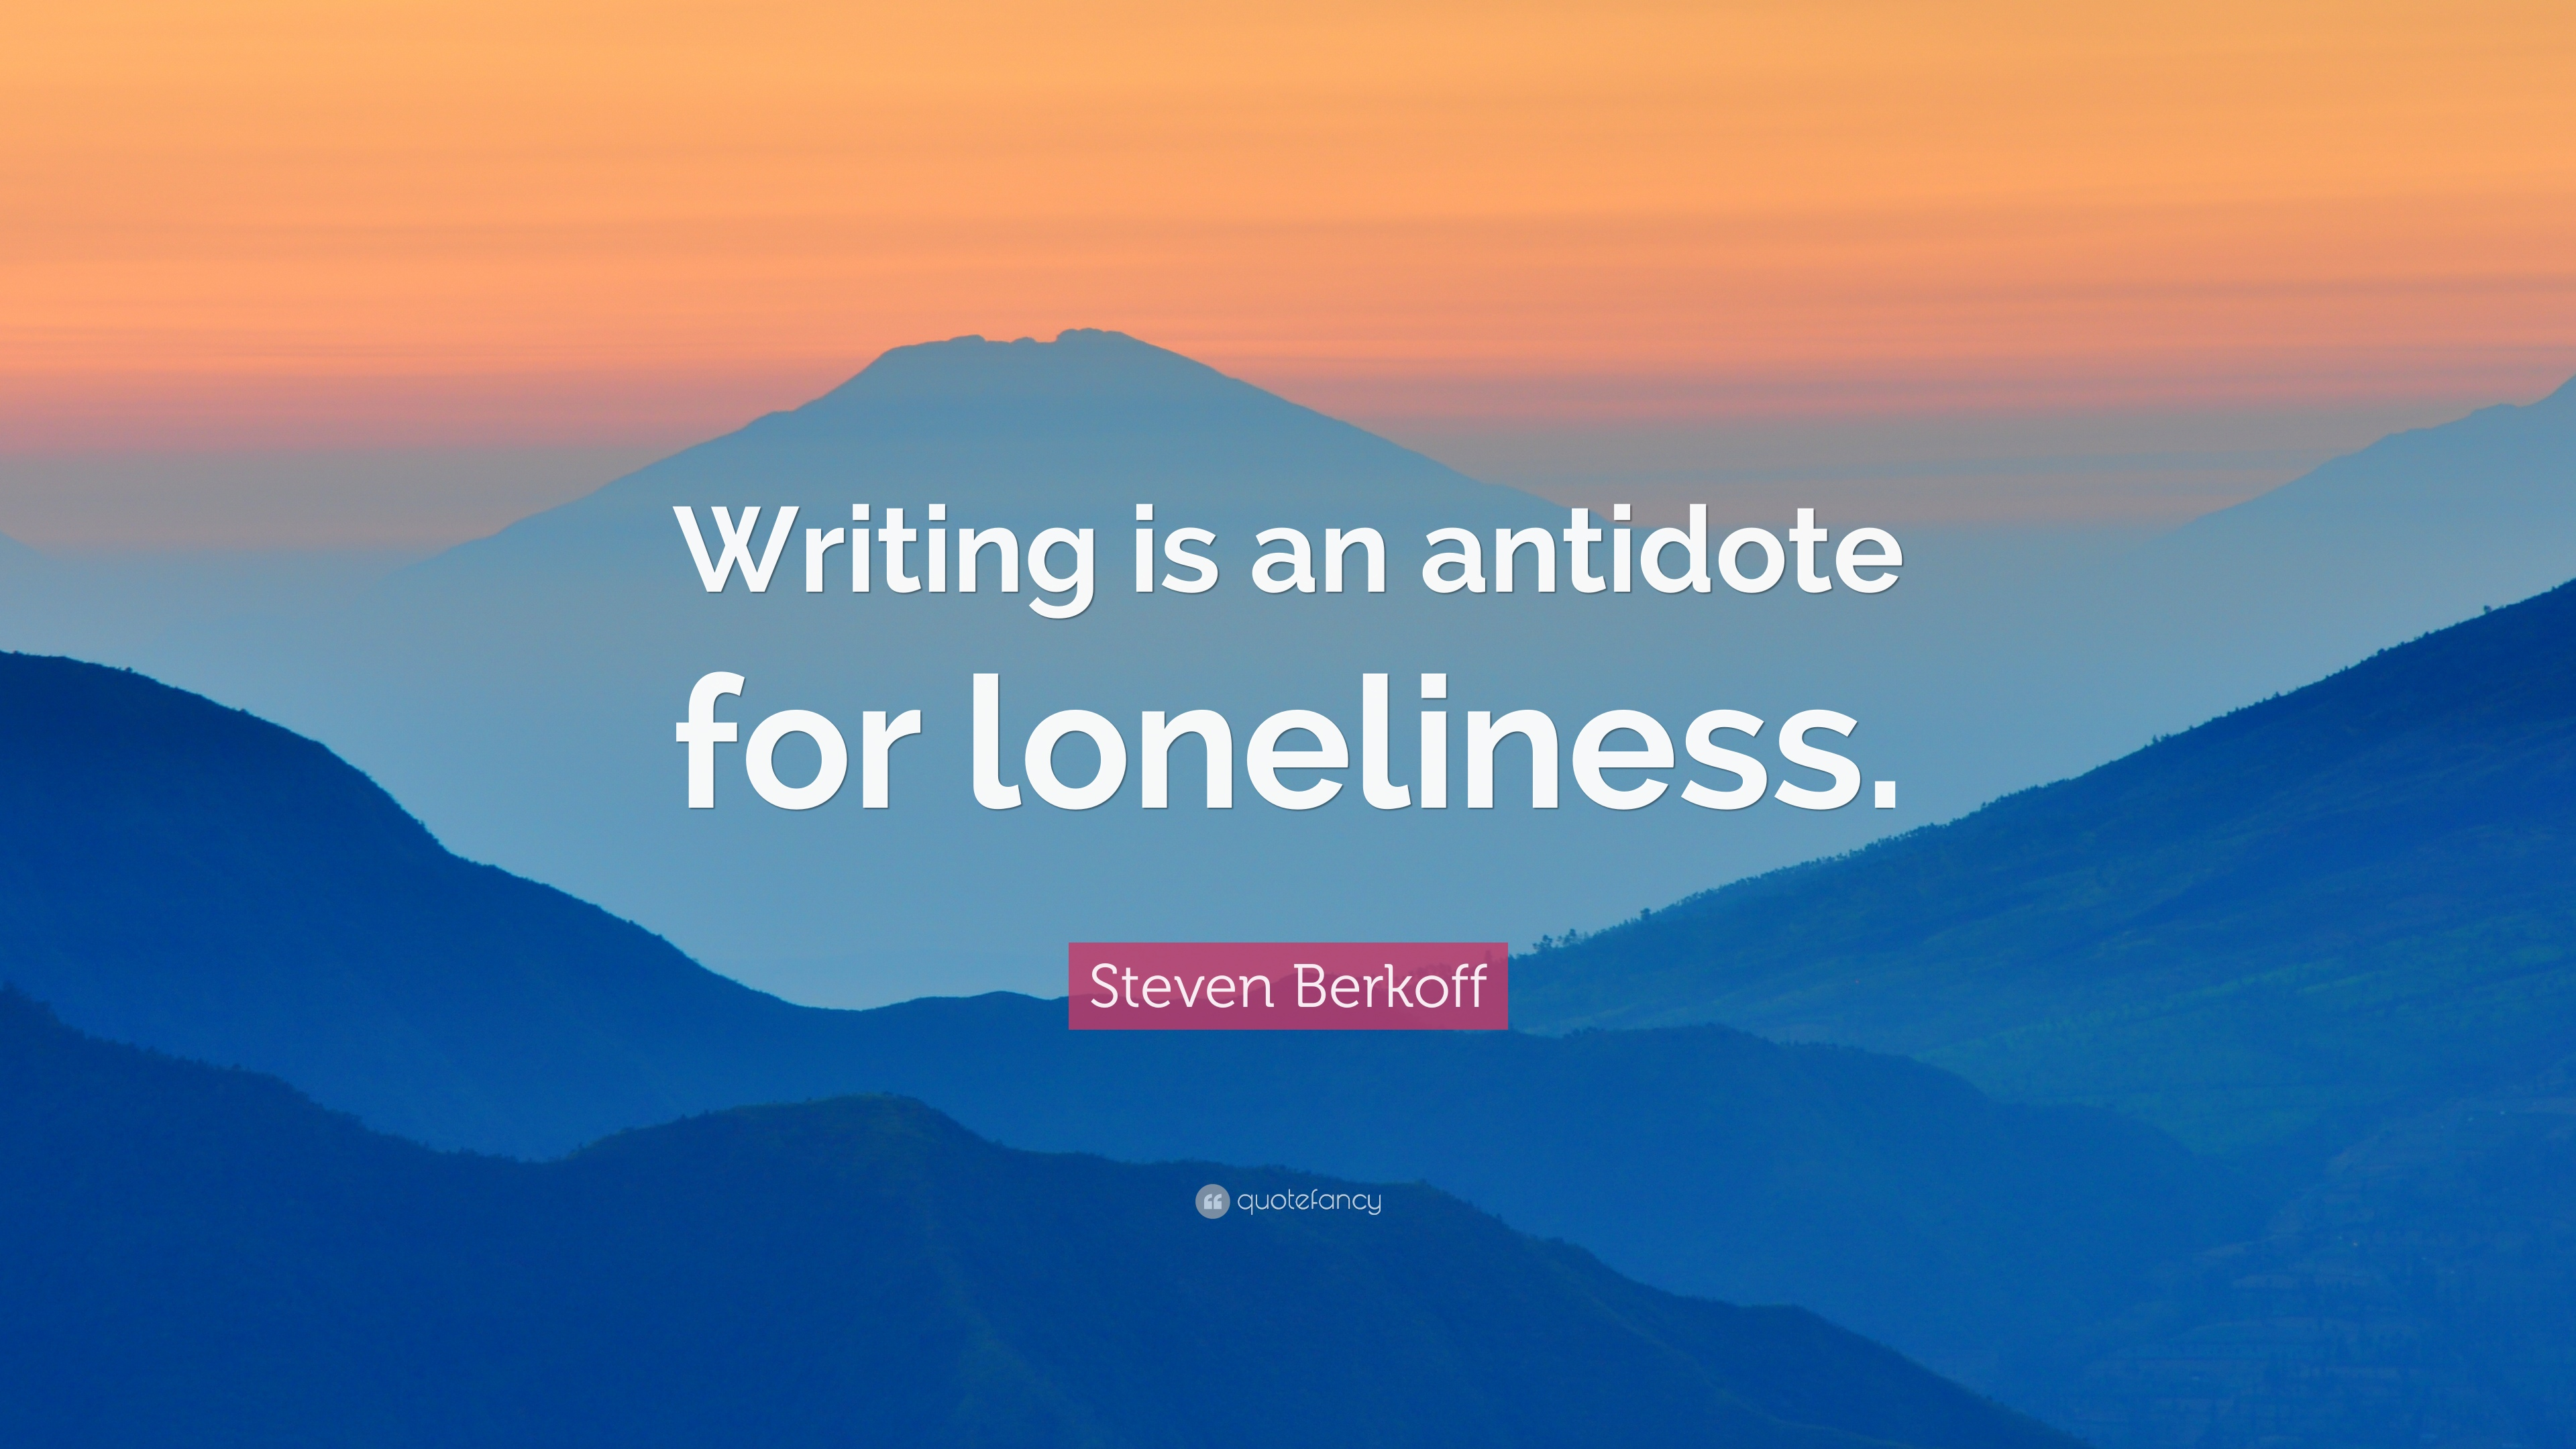 1596164-steven-berkoff-quote-writing-is-an-antidote-for-loneliness